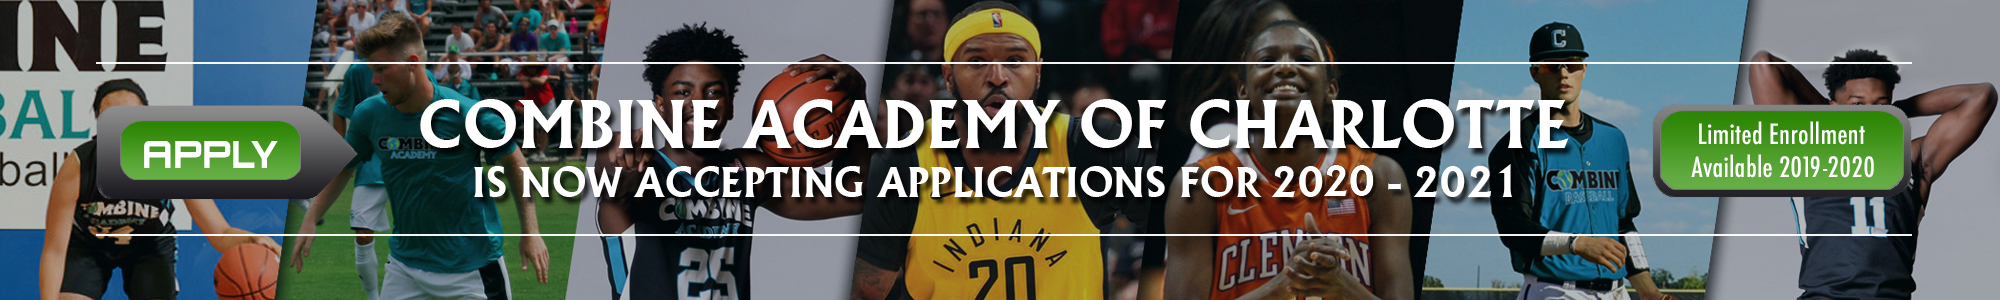 Combine Academy Accepting Applications